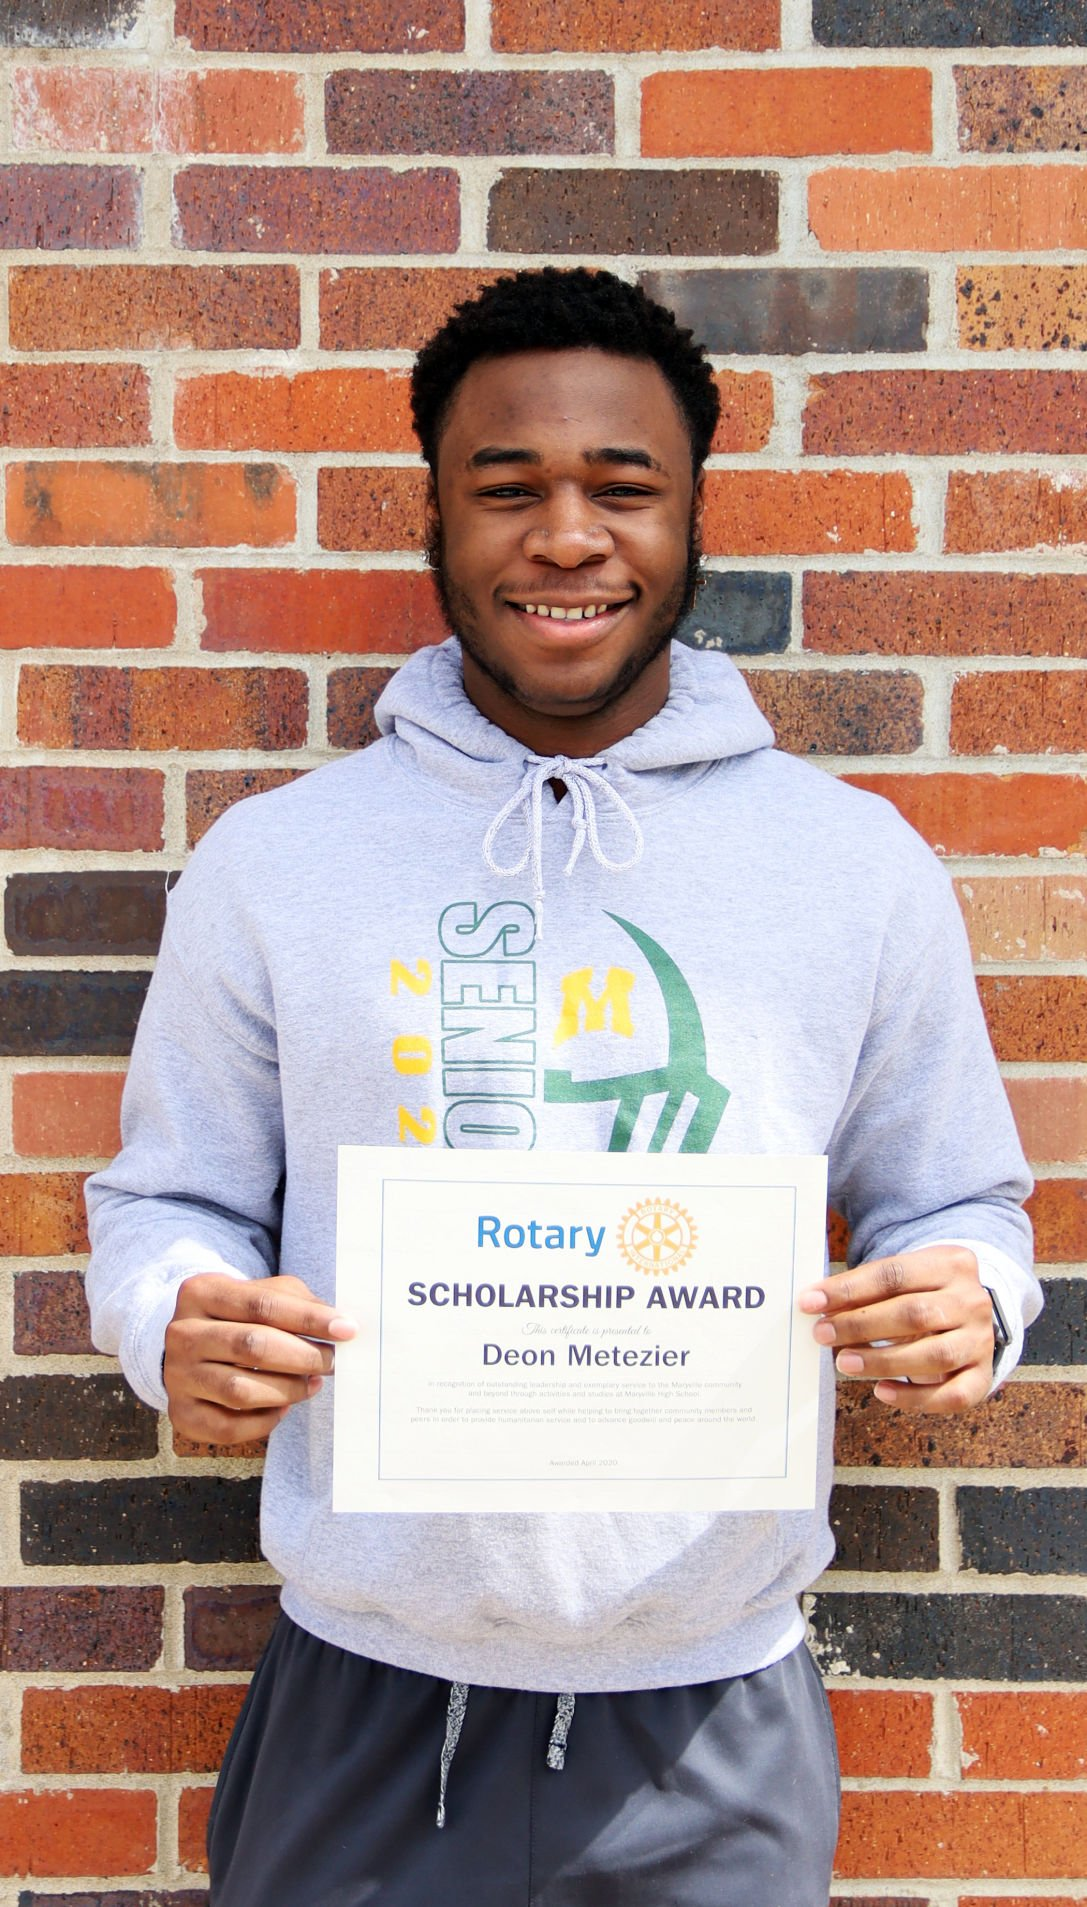 5-14-20 Rotary Students of the Month Deon Metezier.jpg